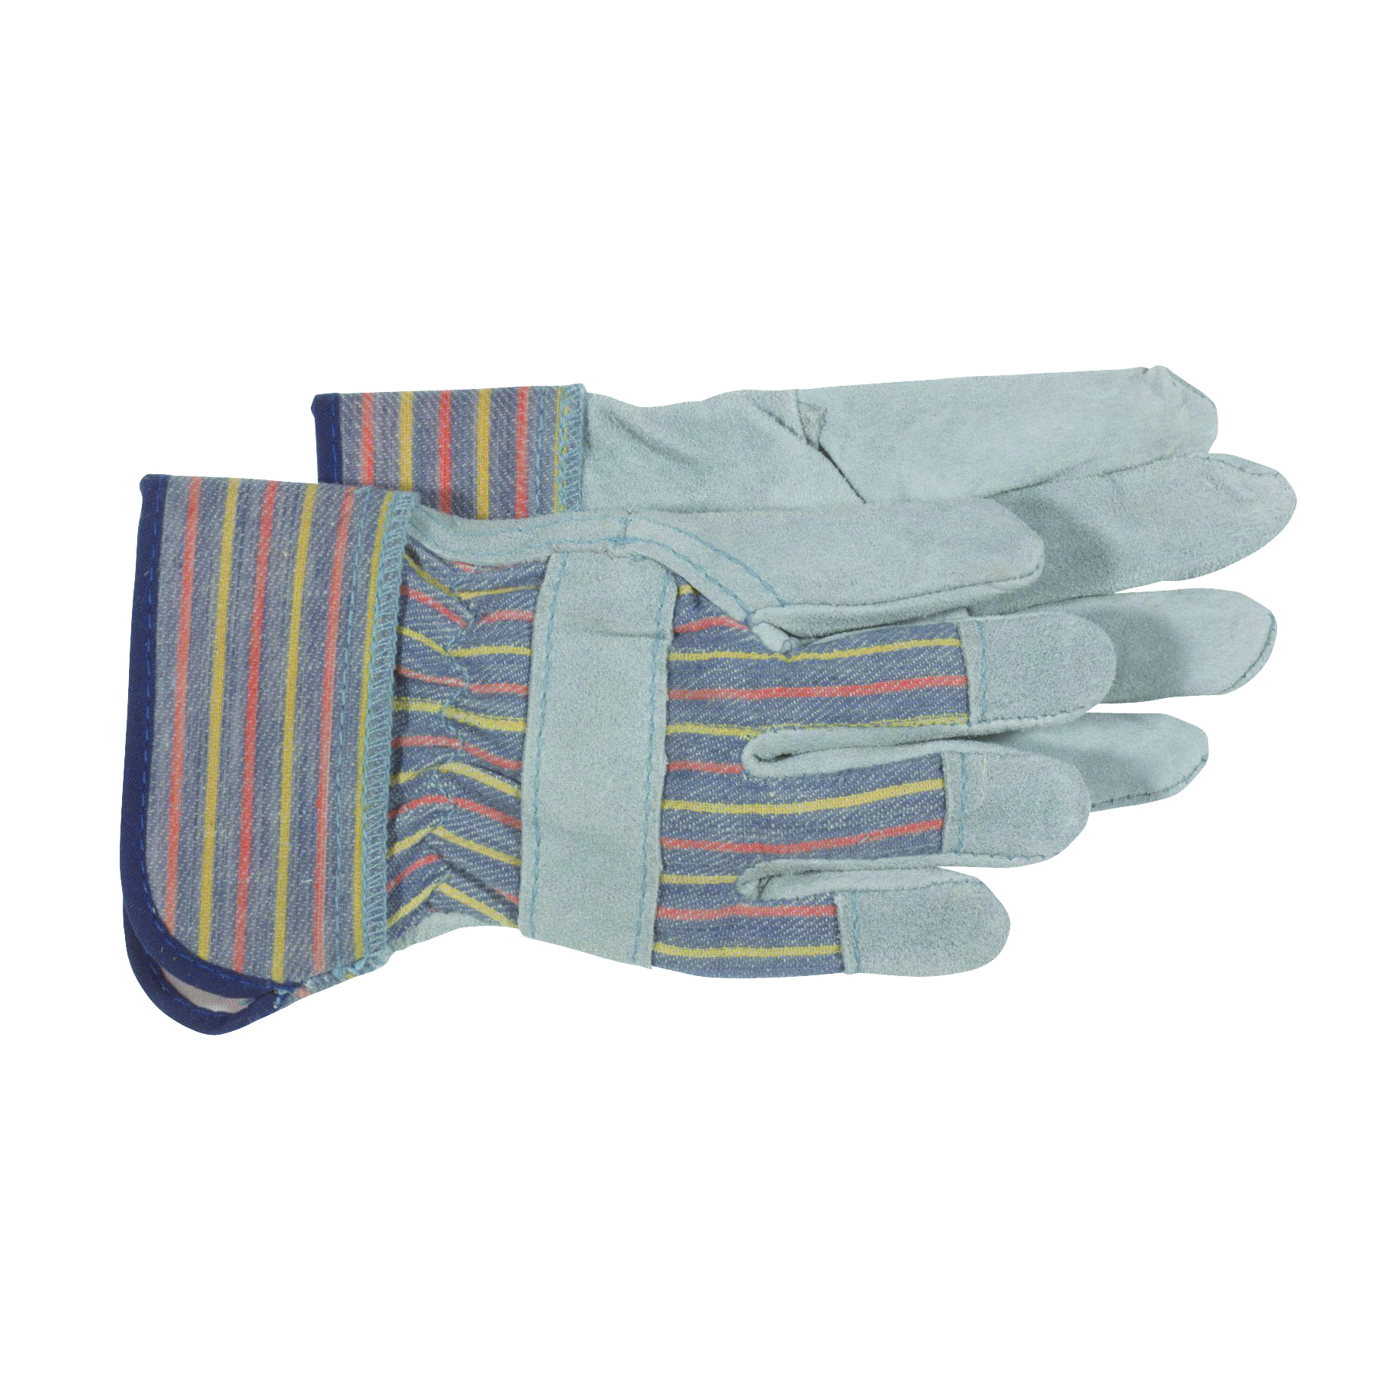 Picture of BOSS 4094K Welder Gloves, Wing Thumb, Rubberized Safety Cuff, Blue/Gray